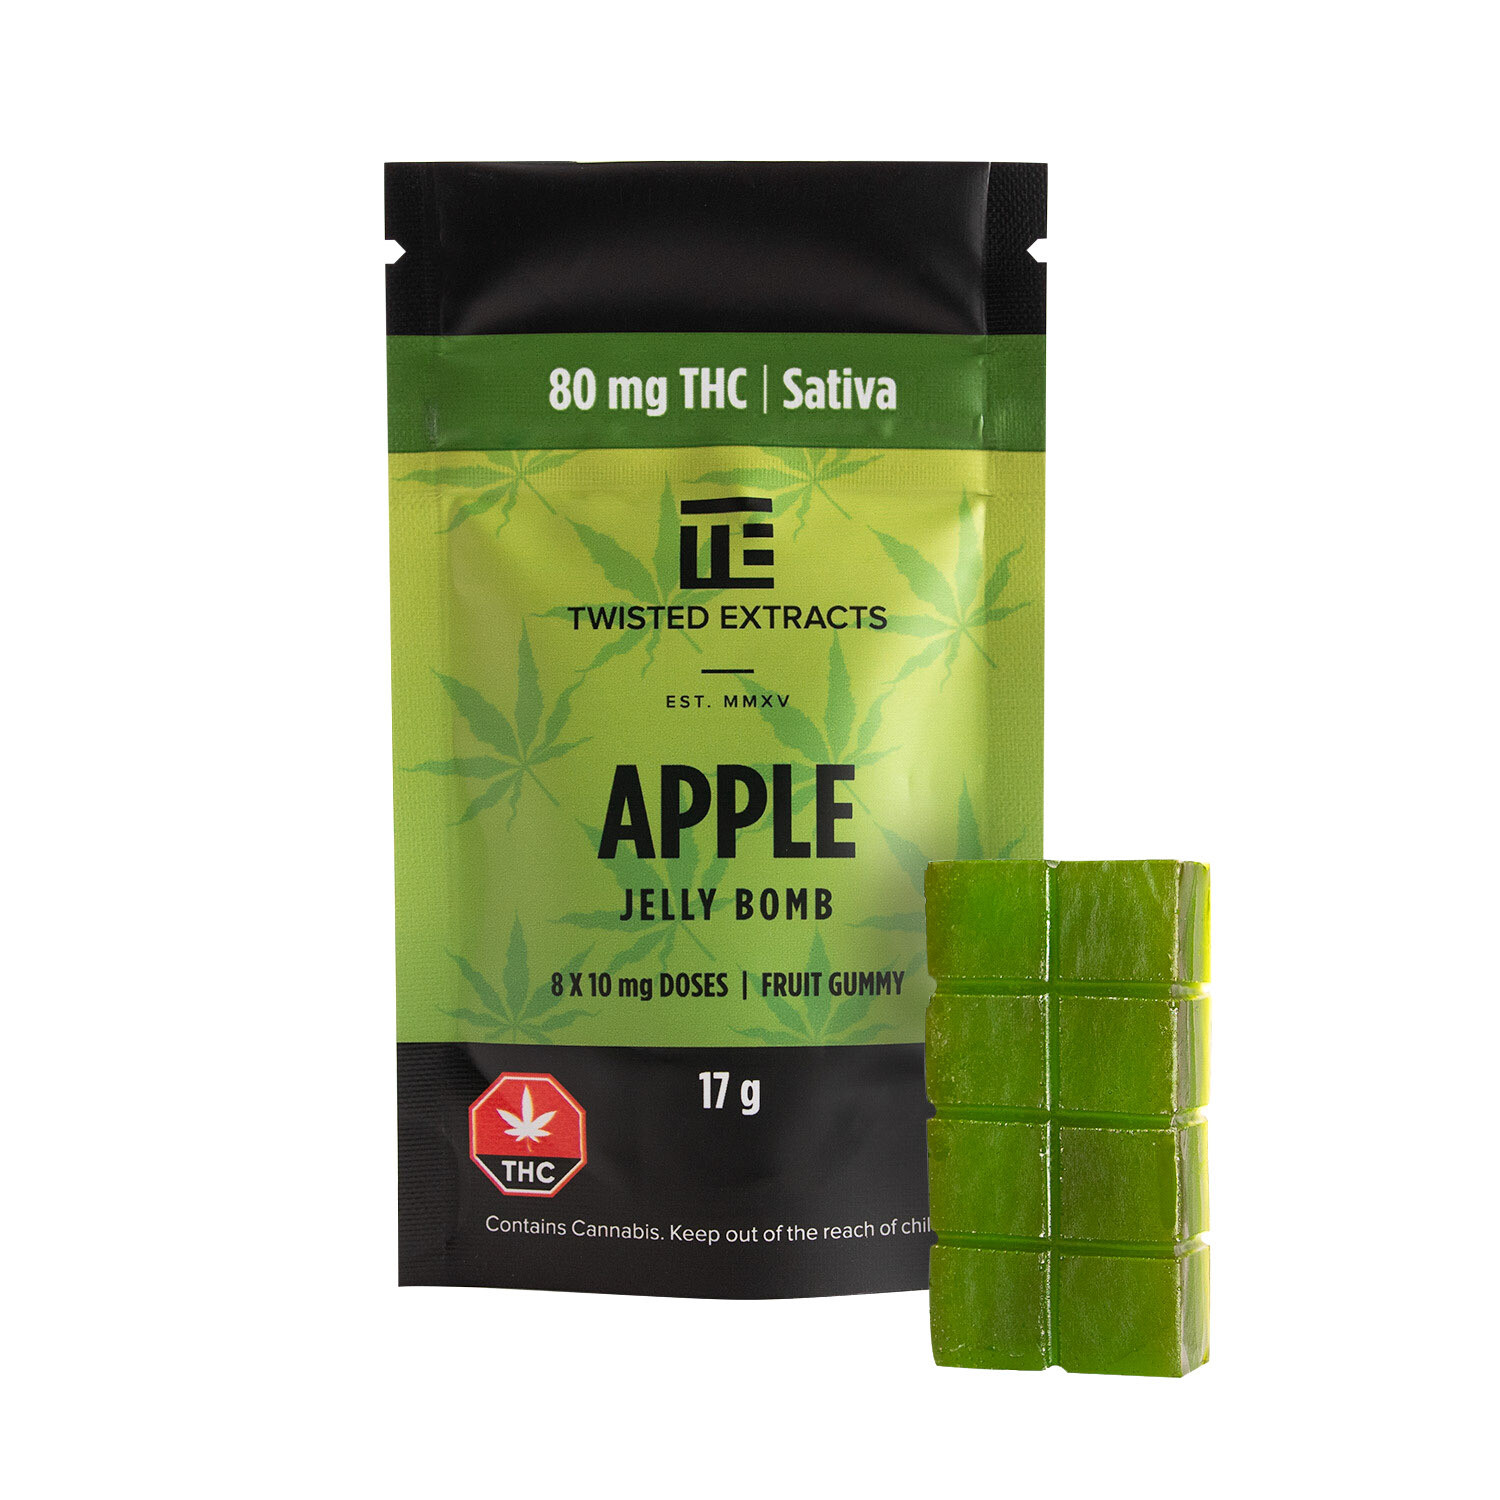 80mg THC Apple Jelly Bomb by Twisted Extracts